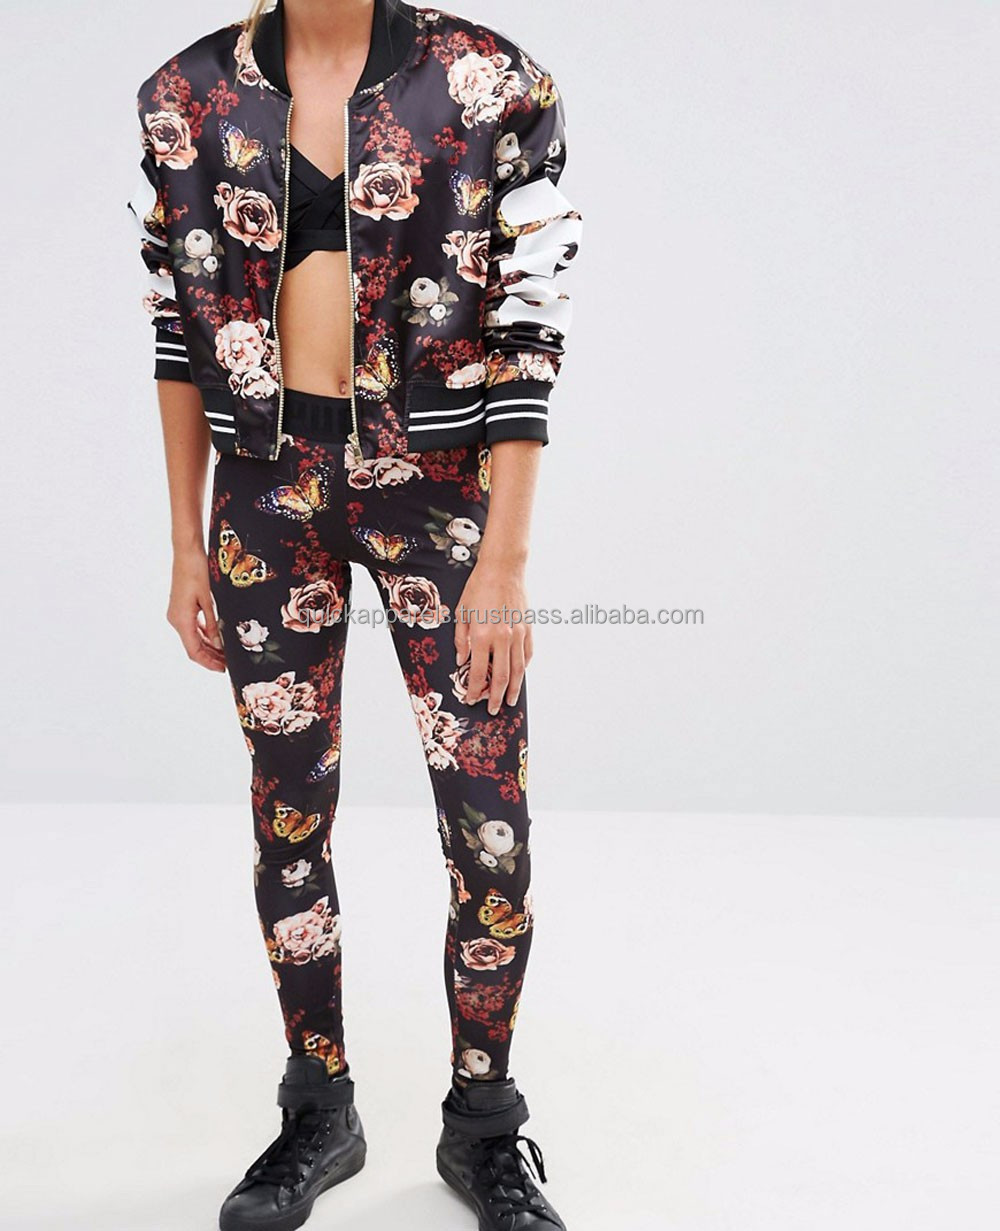 Floral print leggings for women wholesale